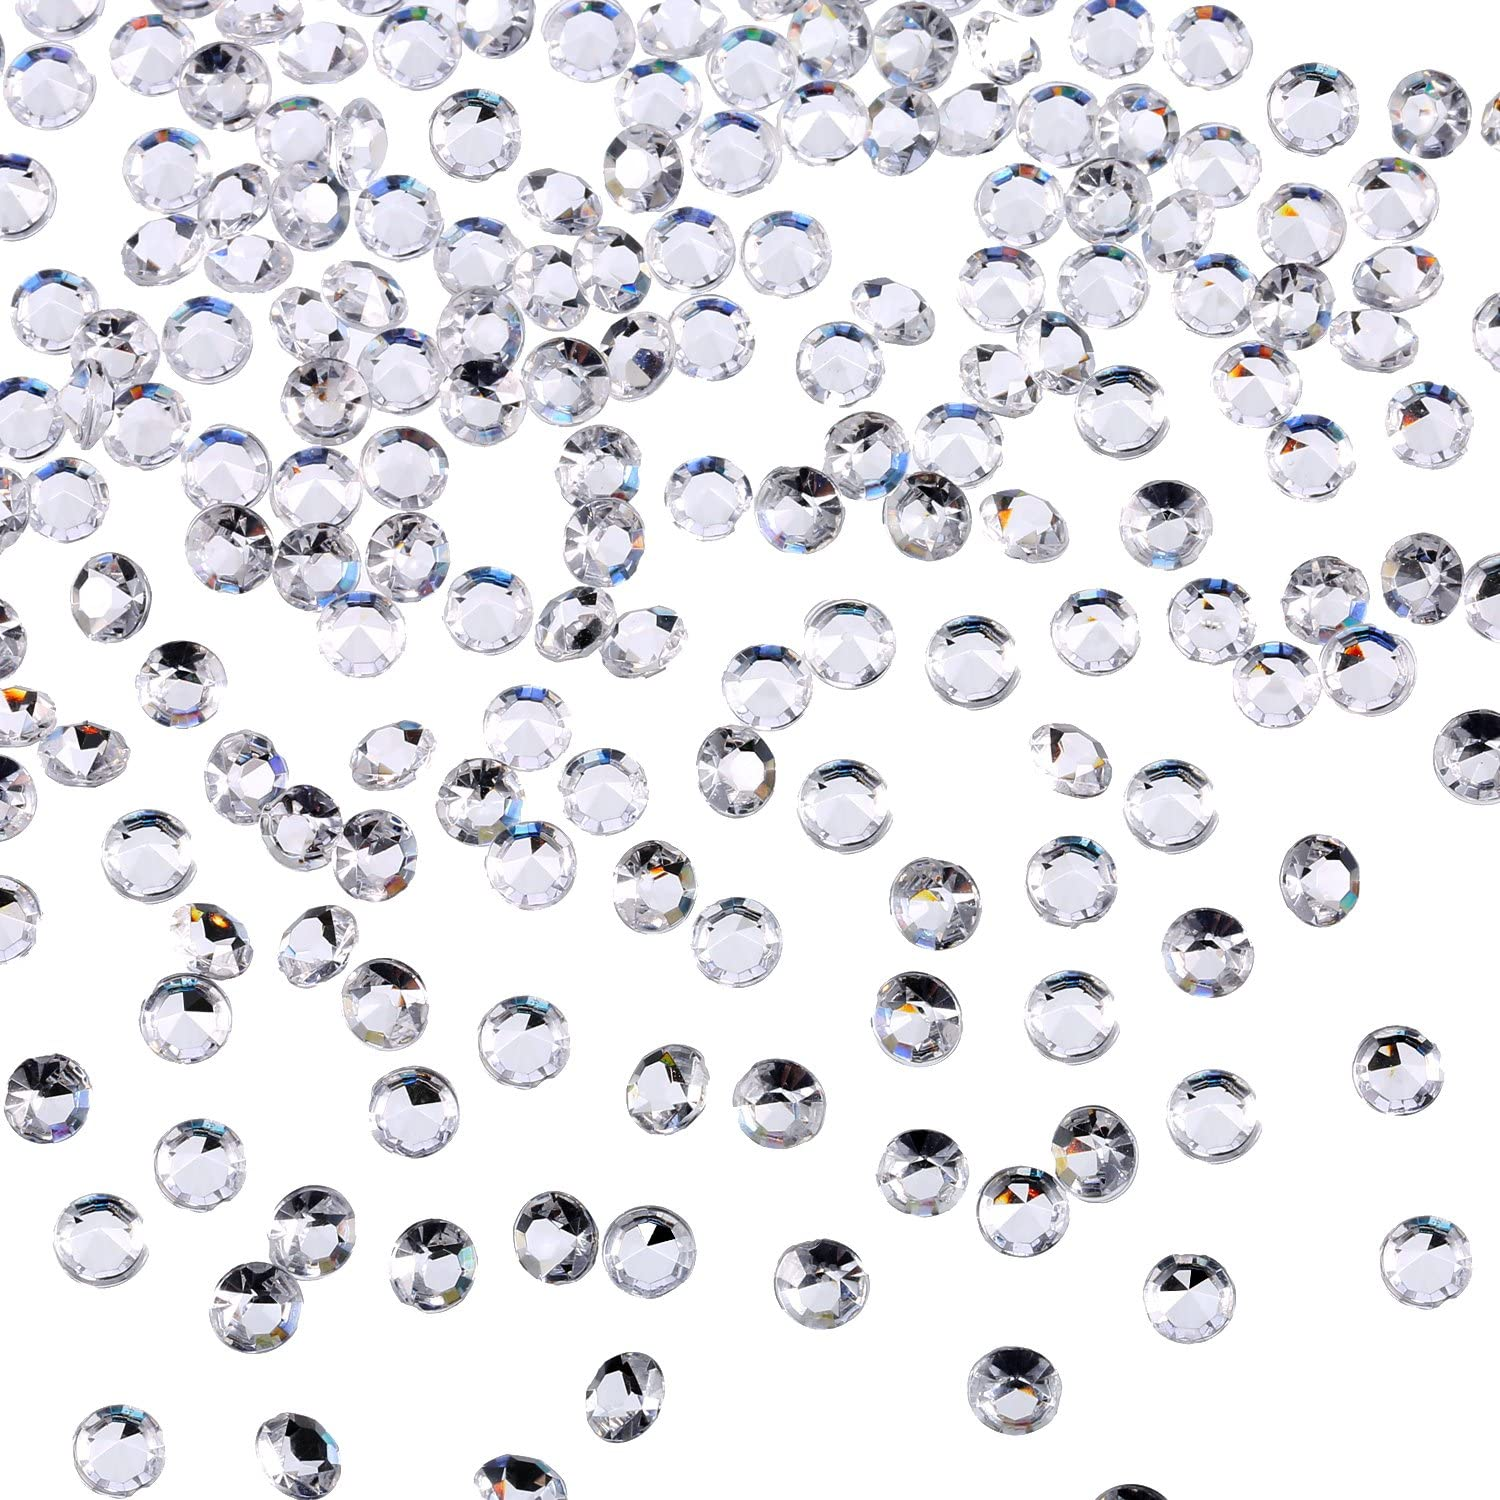 10000 Clear Wedding Table Scatter Confetti Crystals Acrylic Diamonds Rhinestones for Table Centerpiece Decorations Wedding Decorations Bridal Shower Decorations Vase Beads (Clear, 4.5 MM)